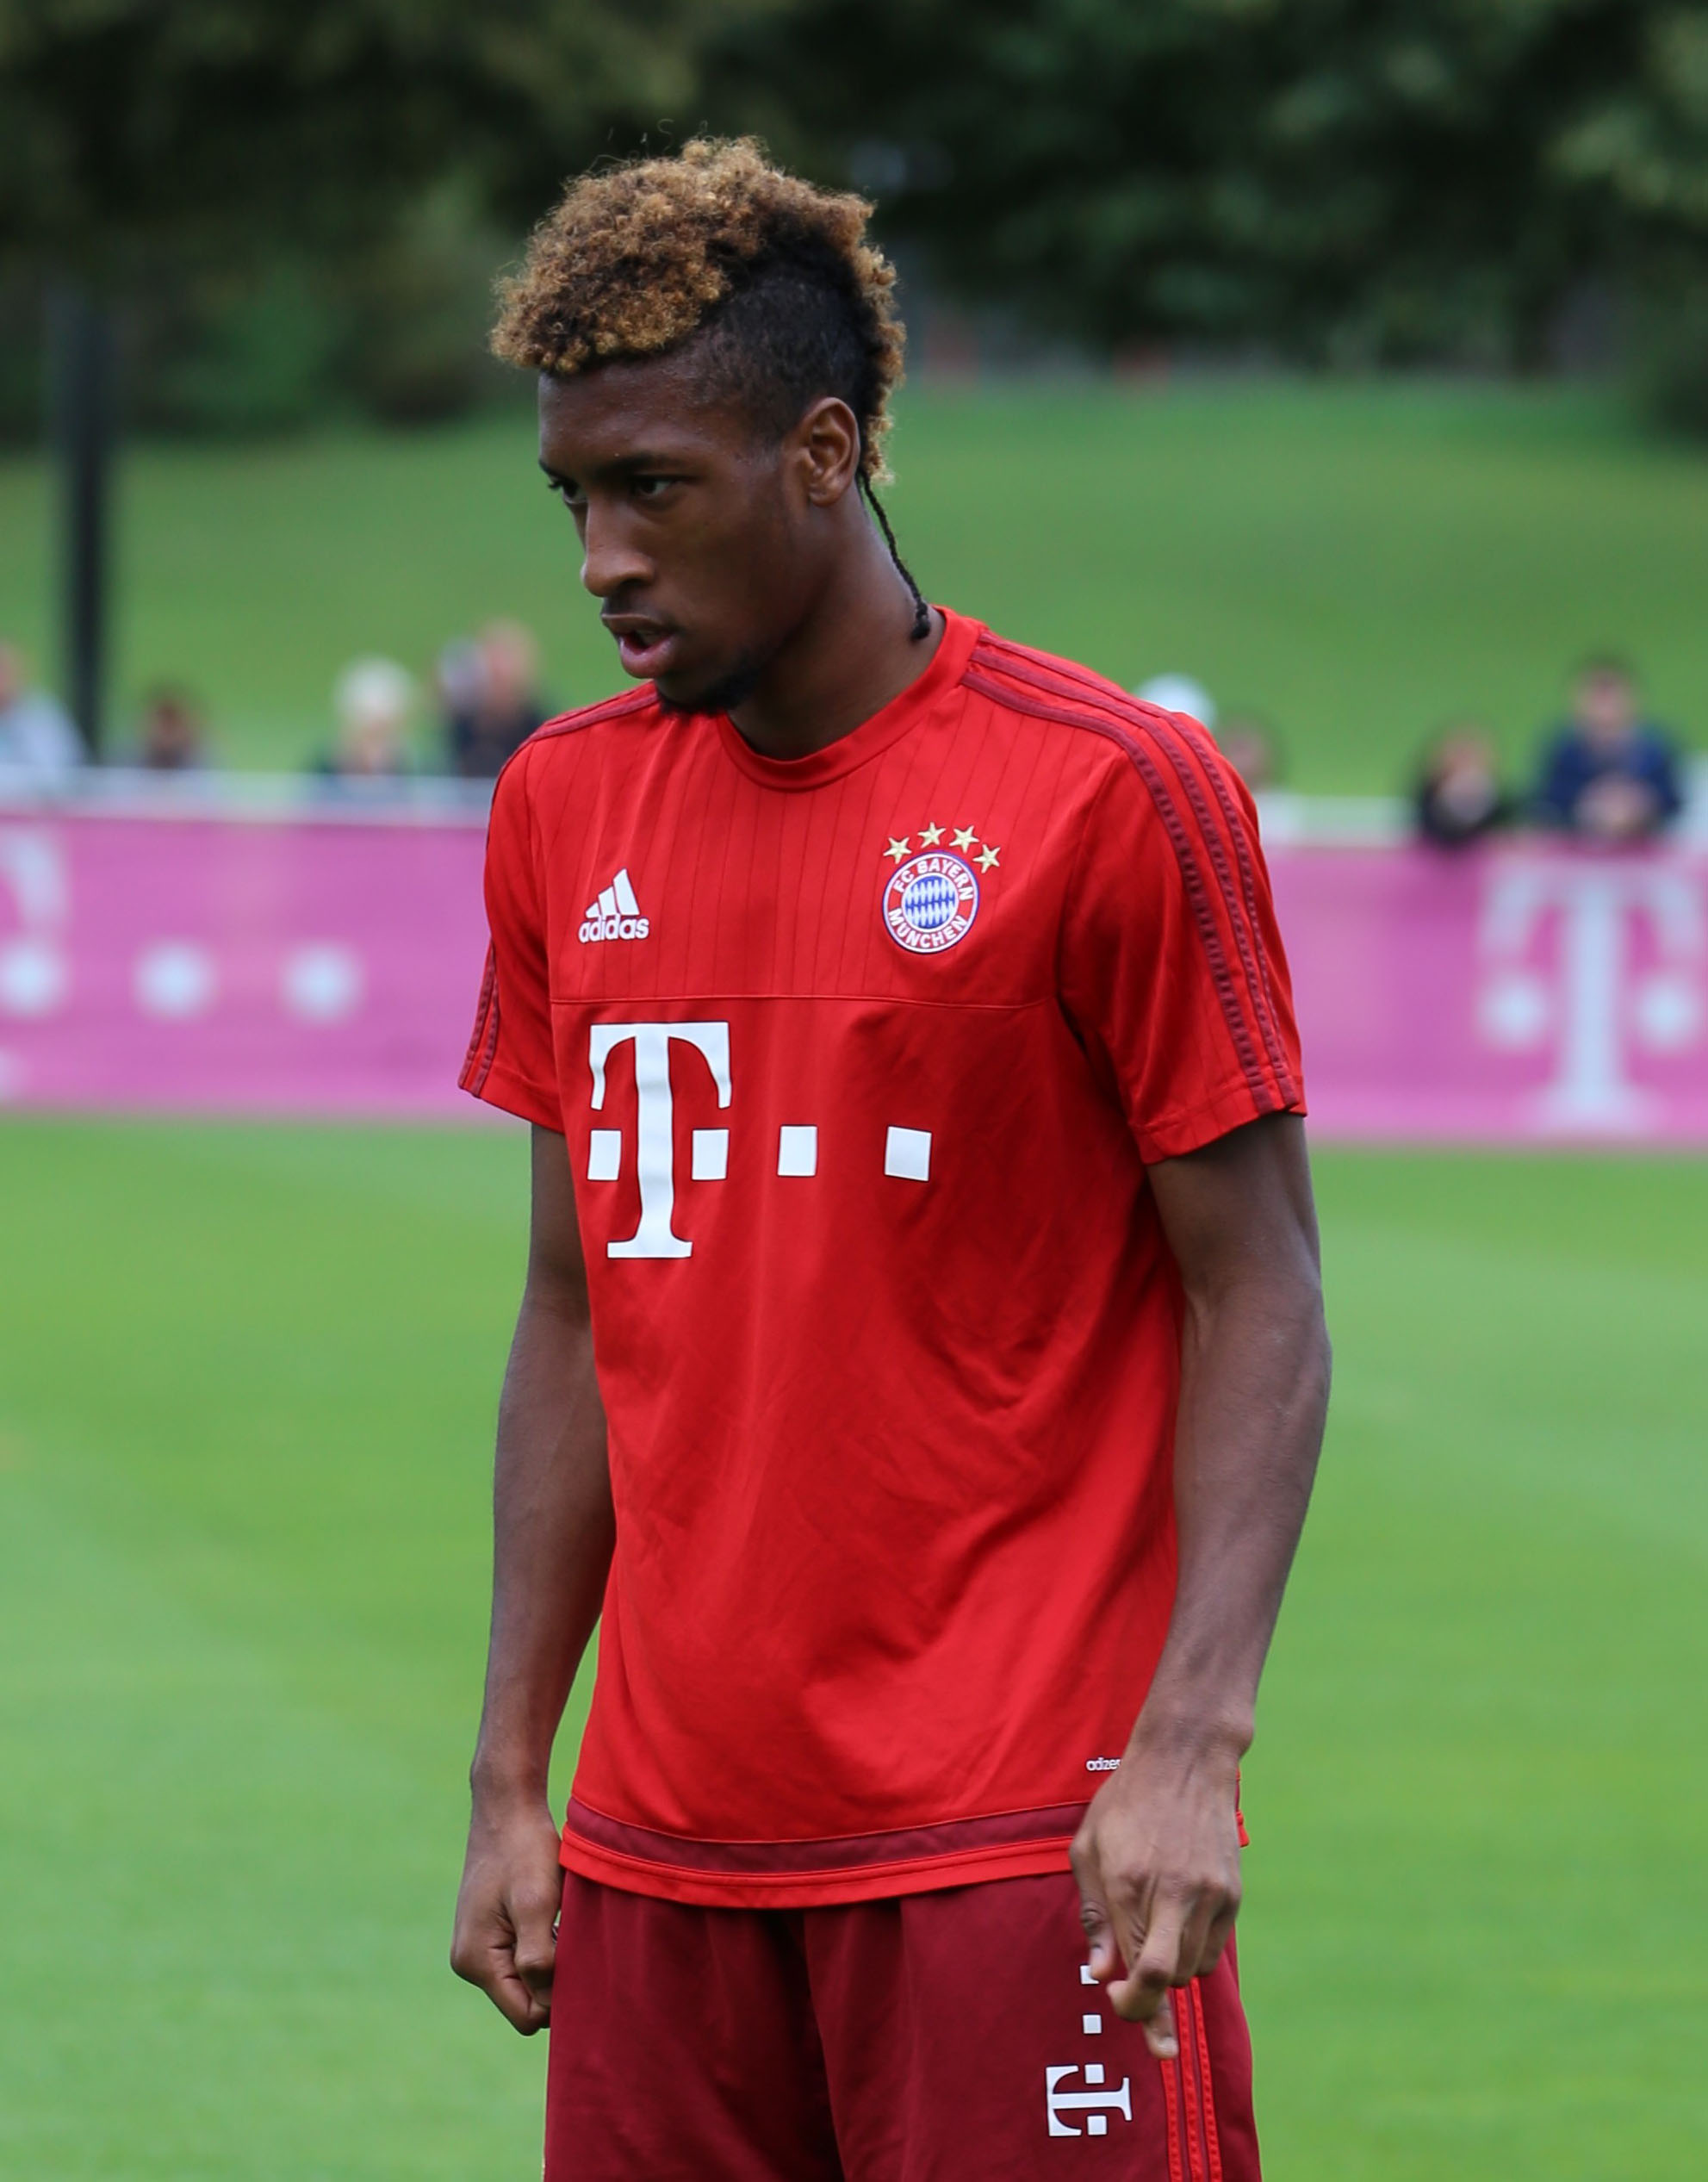 The 22-year old son of father (?) and mother(?) Kingsley Coman in 2019 photo. Kingsley Coman earned a 0.19 million dollar salary - leaving the net worth at 0.76 million in 2019